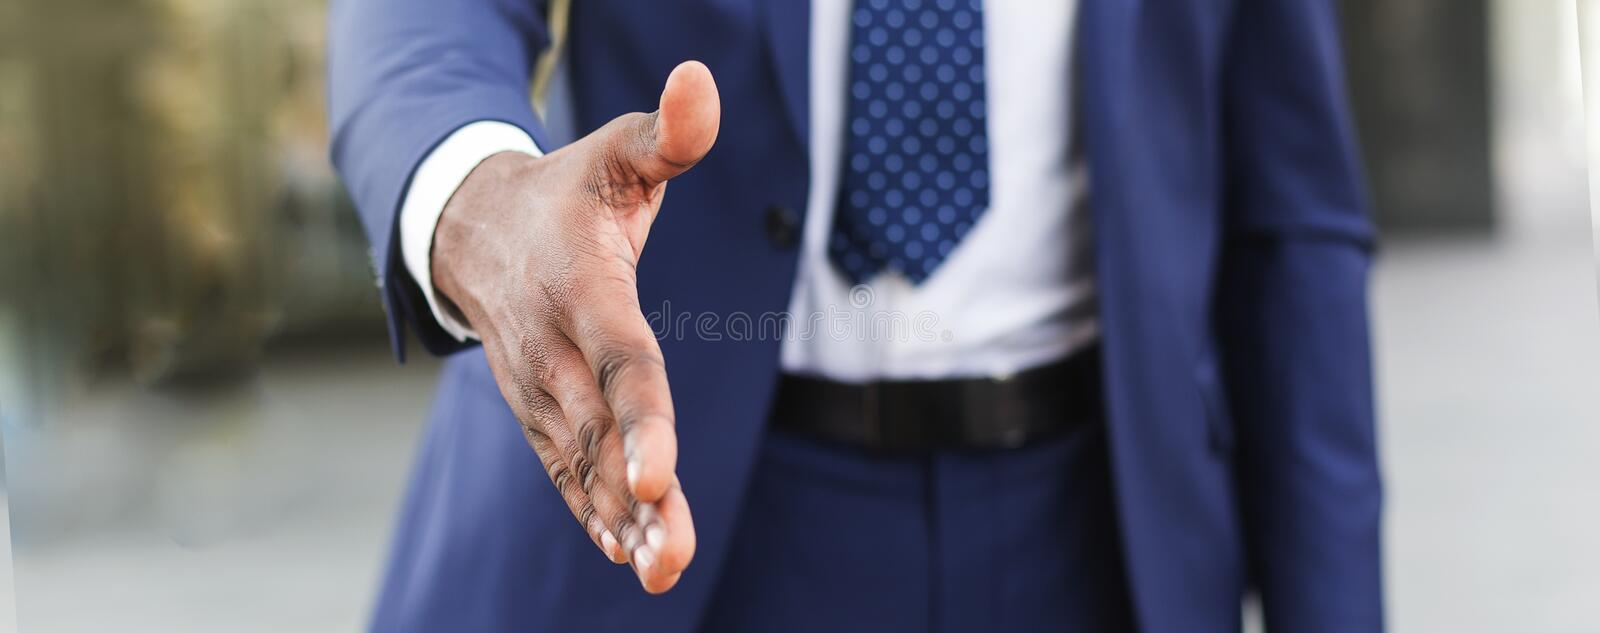 Business partnership meeting concept. Businesman extending hand for greeting royalty free stock image